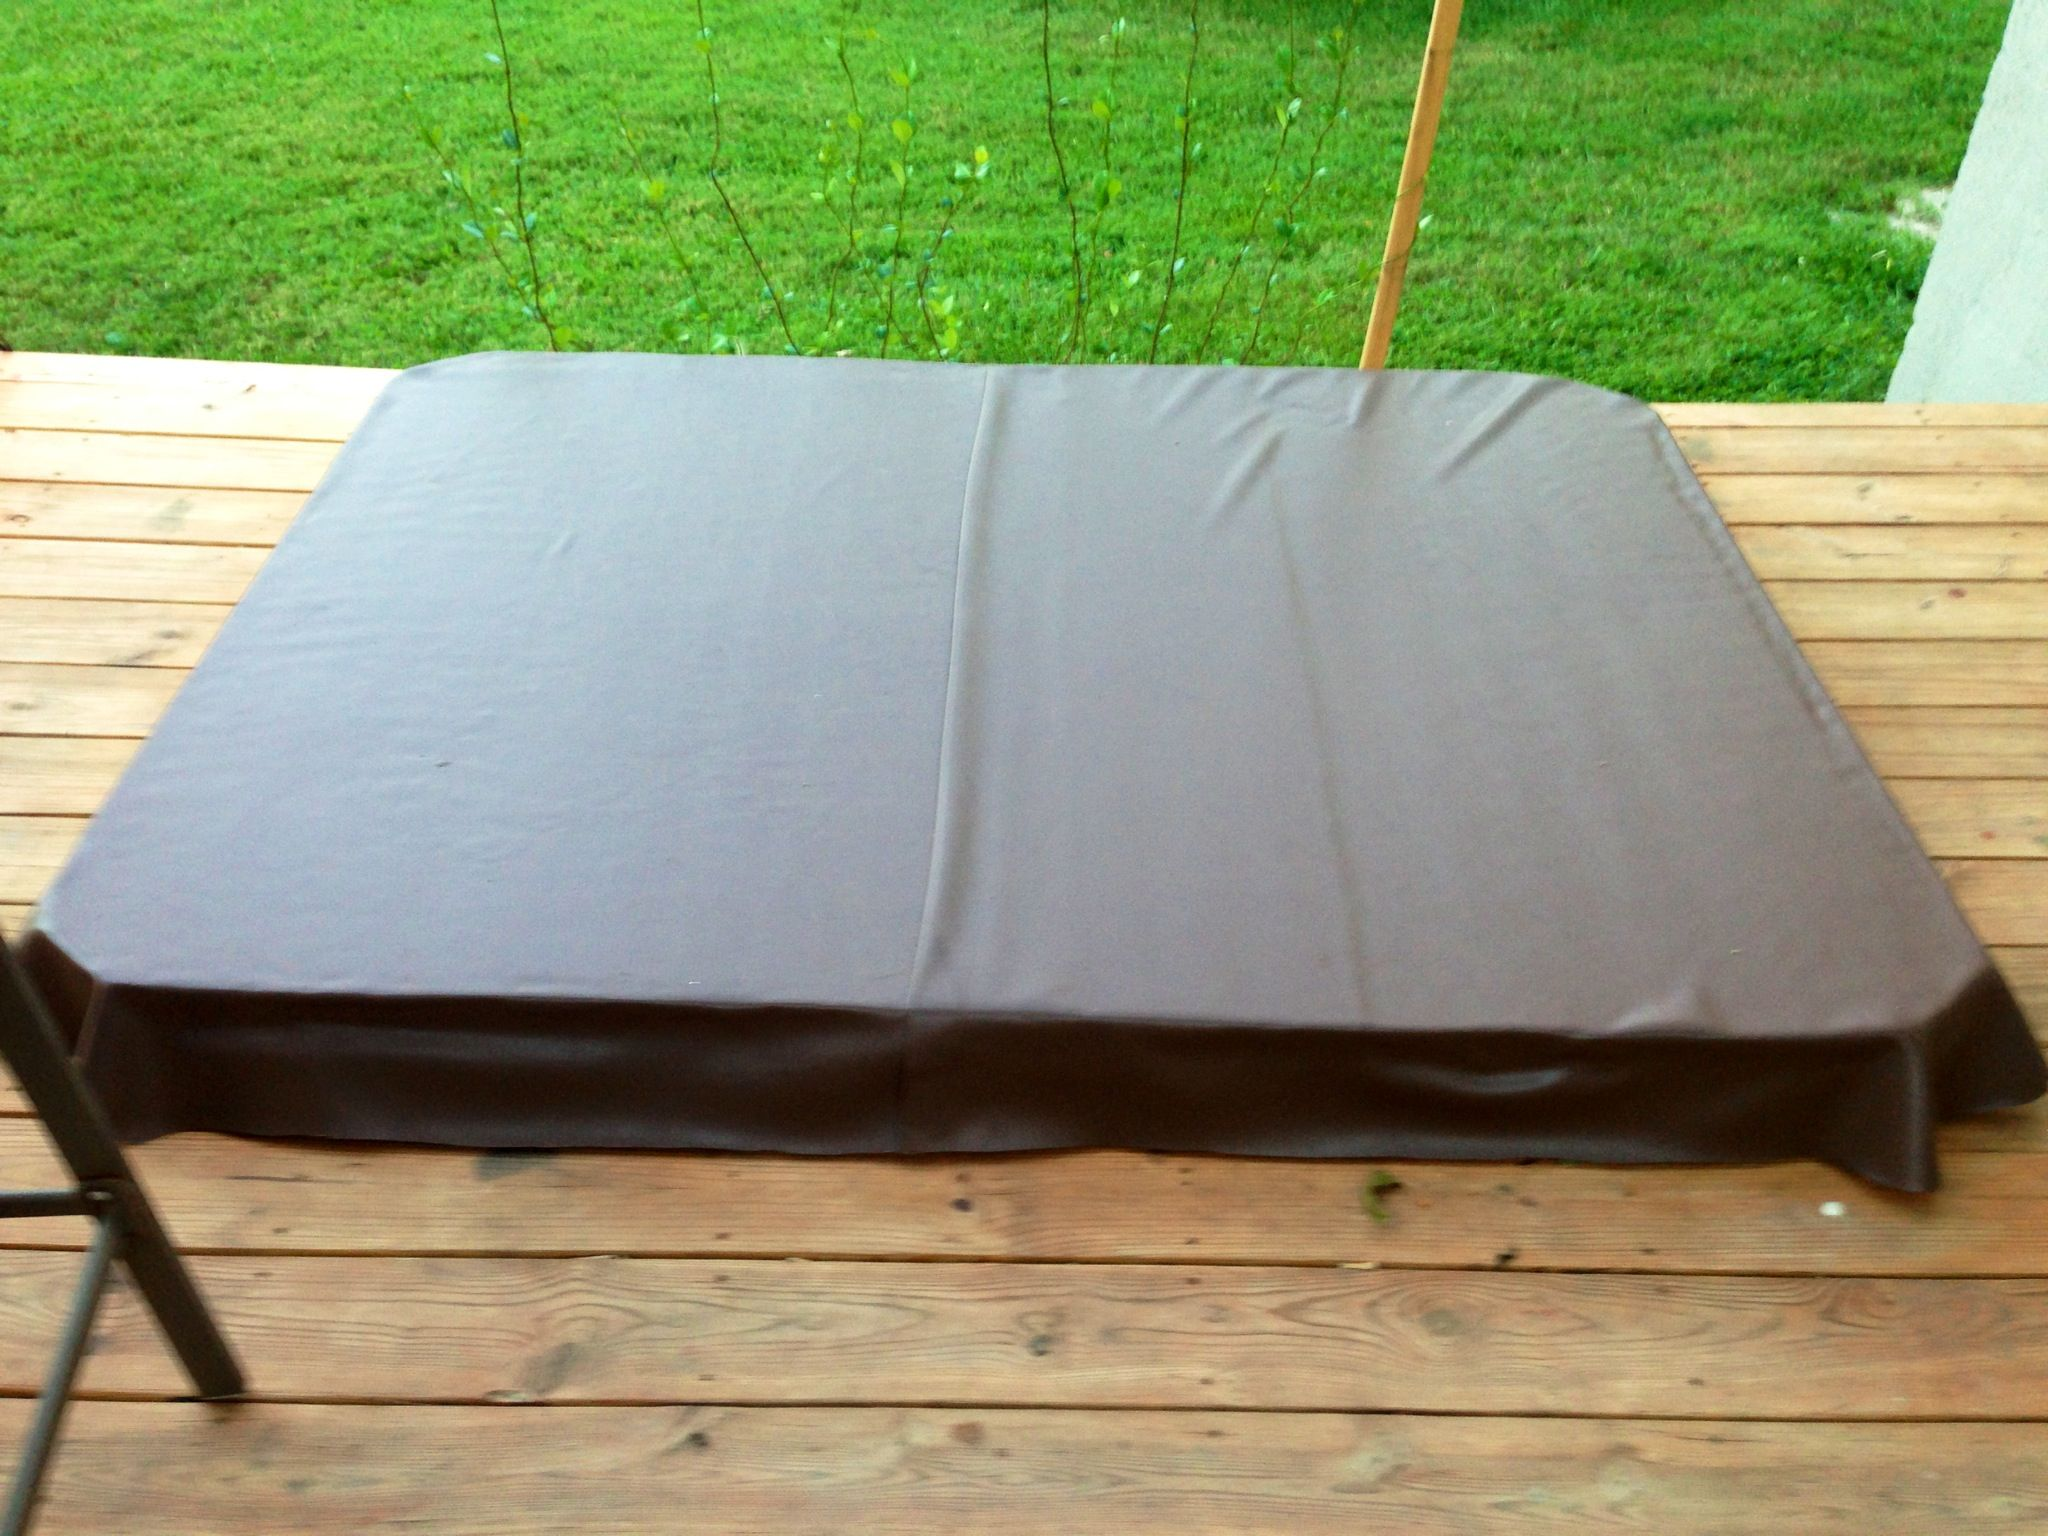 DIY Hot tub cover. 2\